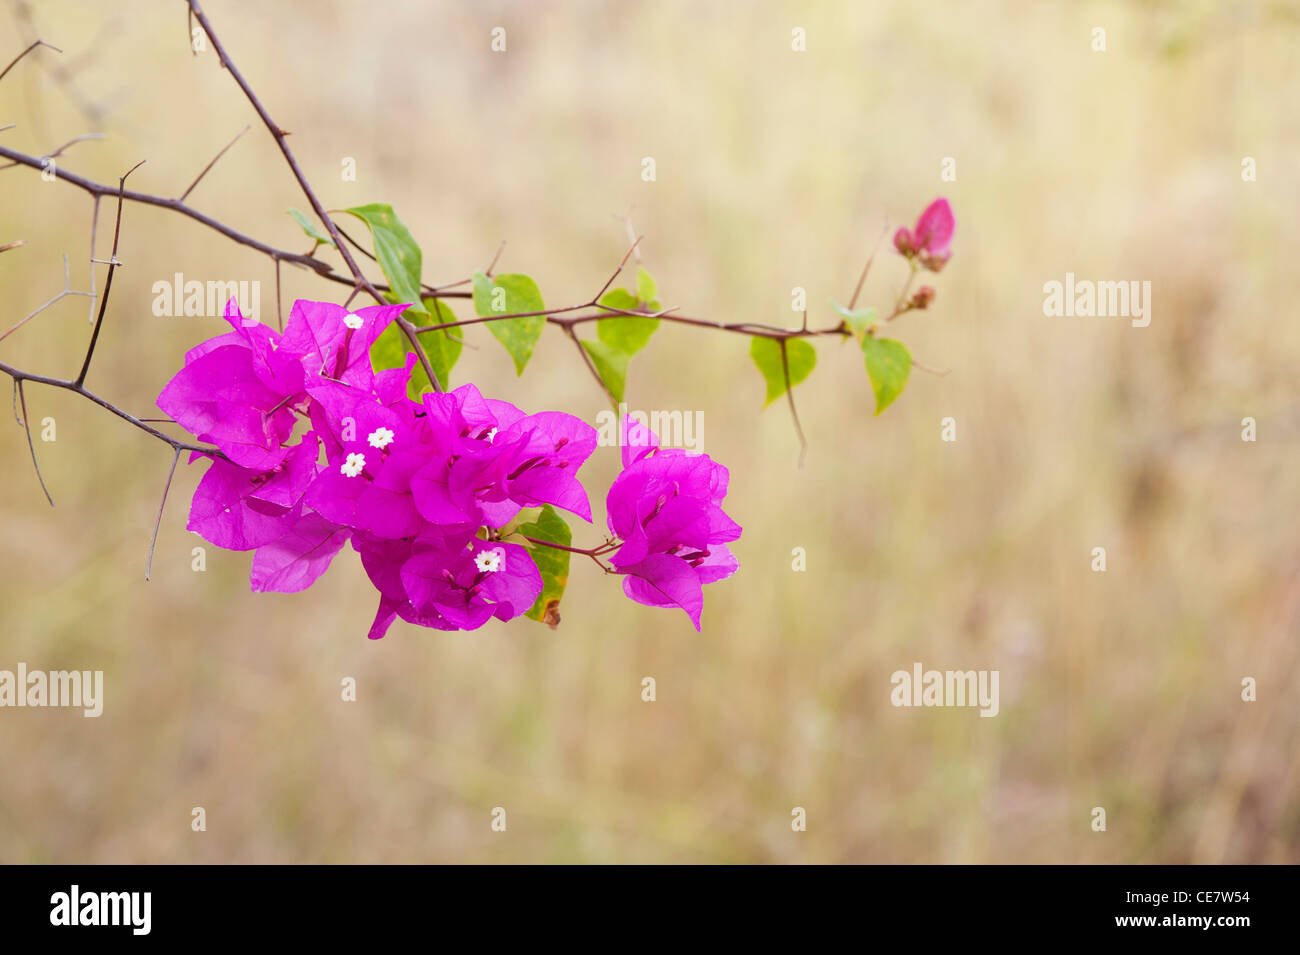 Bougainvillea spectabilis. Great bougainvillea Small white flowers and purple bracts. India - Stock Image